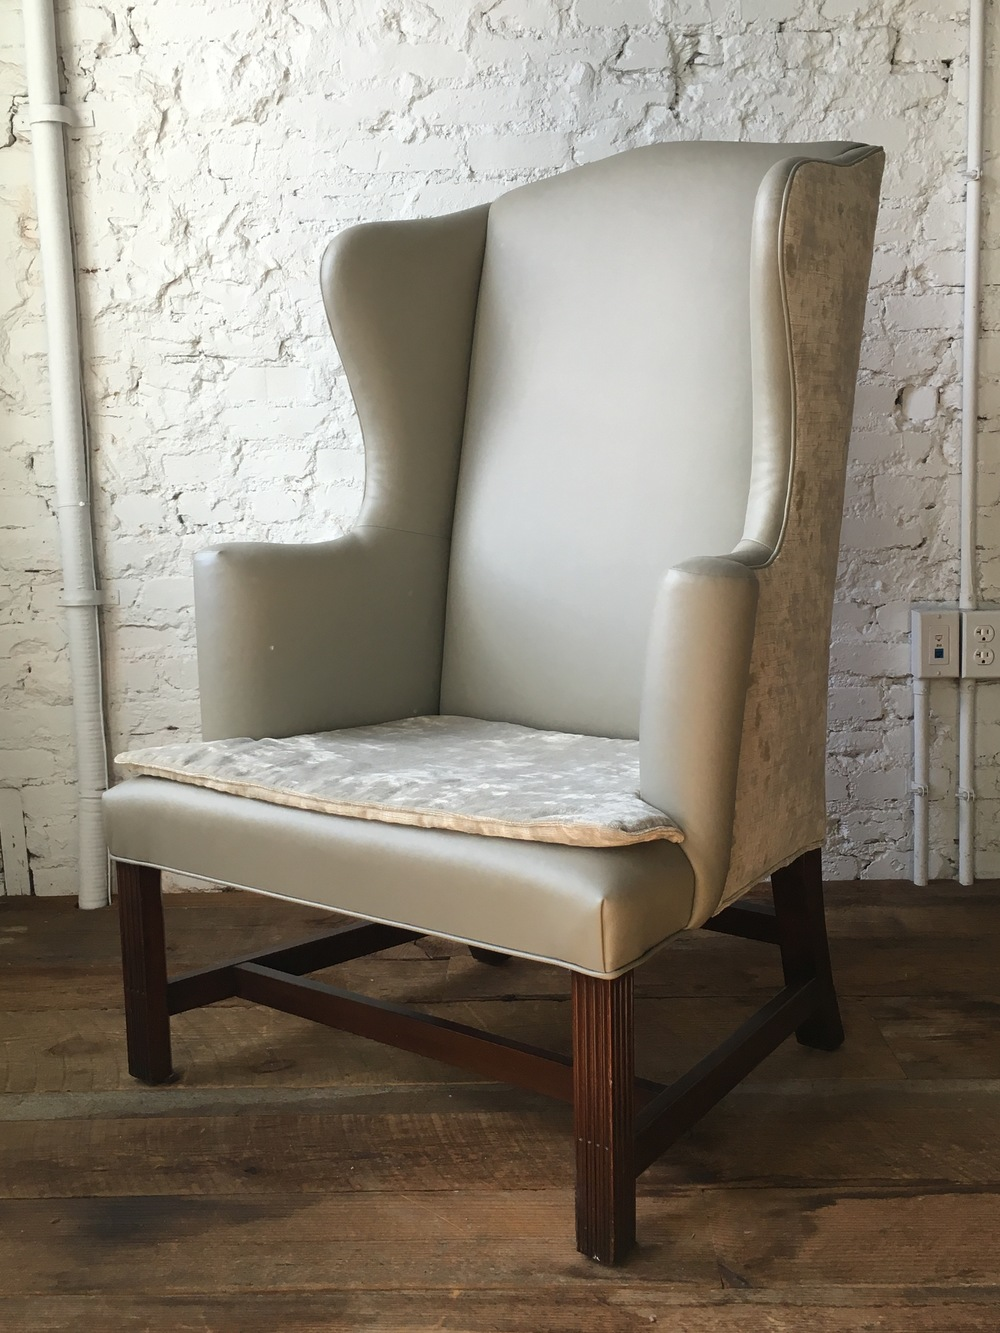 "Period Wing Chair Leather and Sheared Velvet   30.5"" H x 25"" D x 28""L  $6200   To order please call us at 202-234-5926 or email at boutique@darrylcarter.com. Please note pricing excludes taxes and shipping."